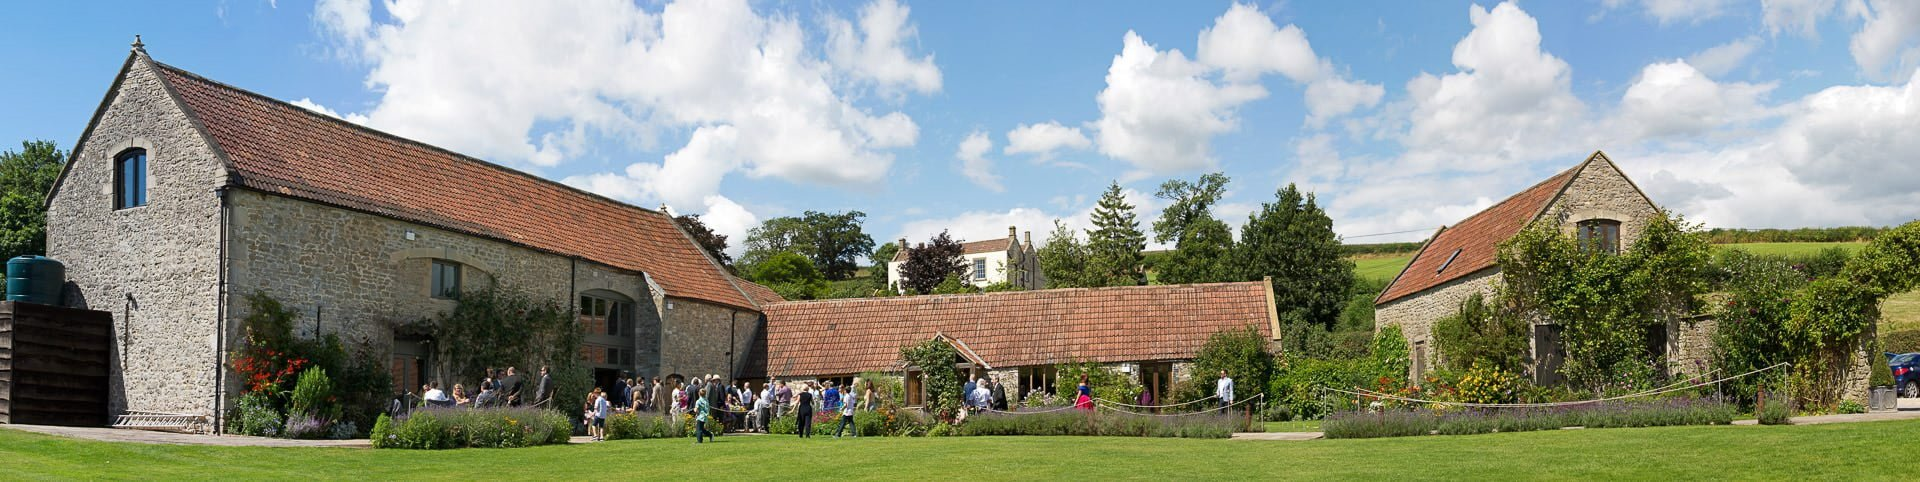 priston mill wedding venue somerset